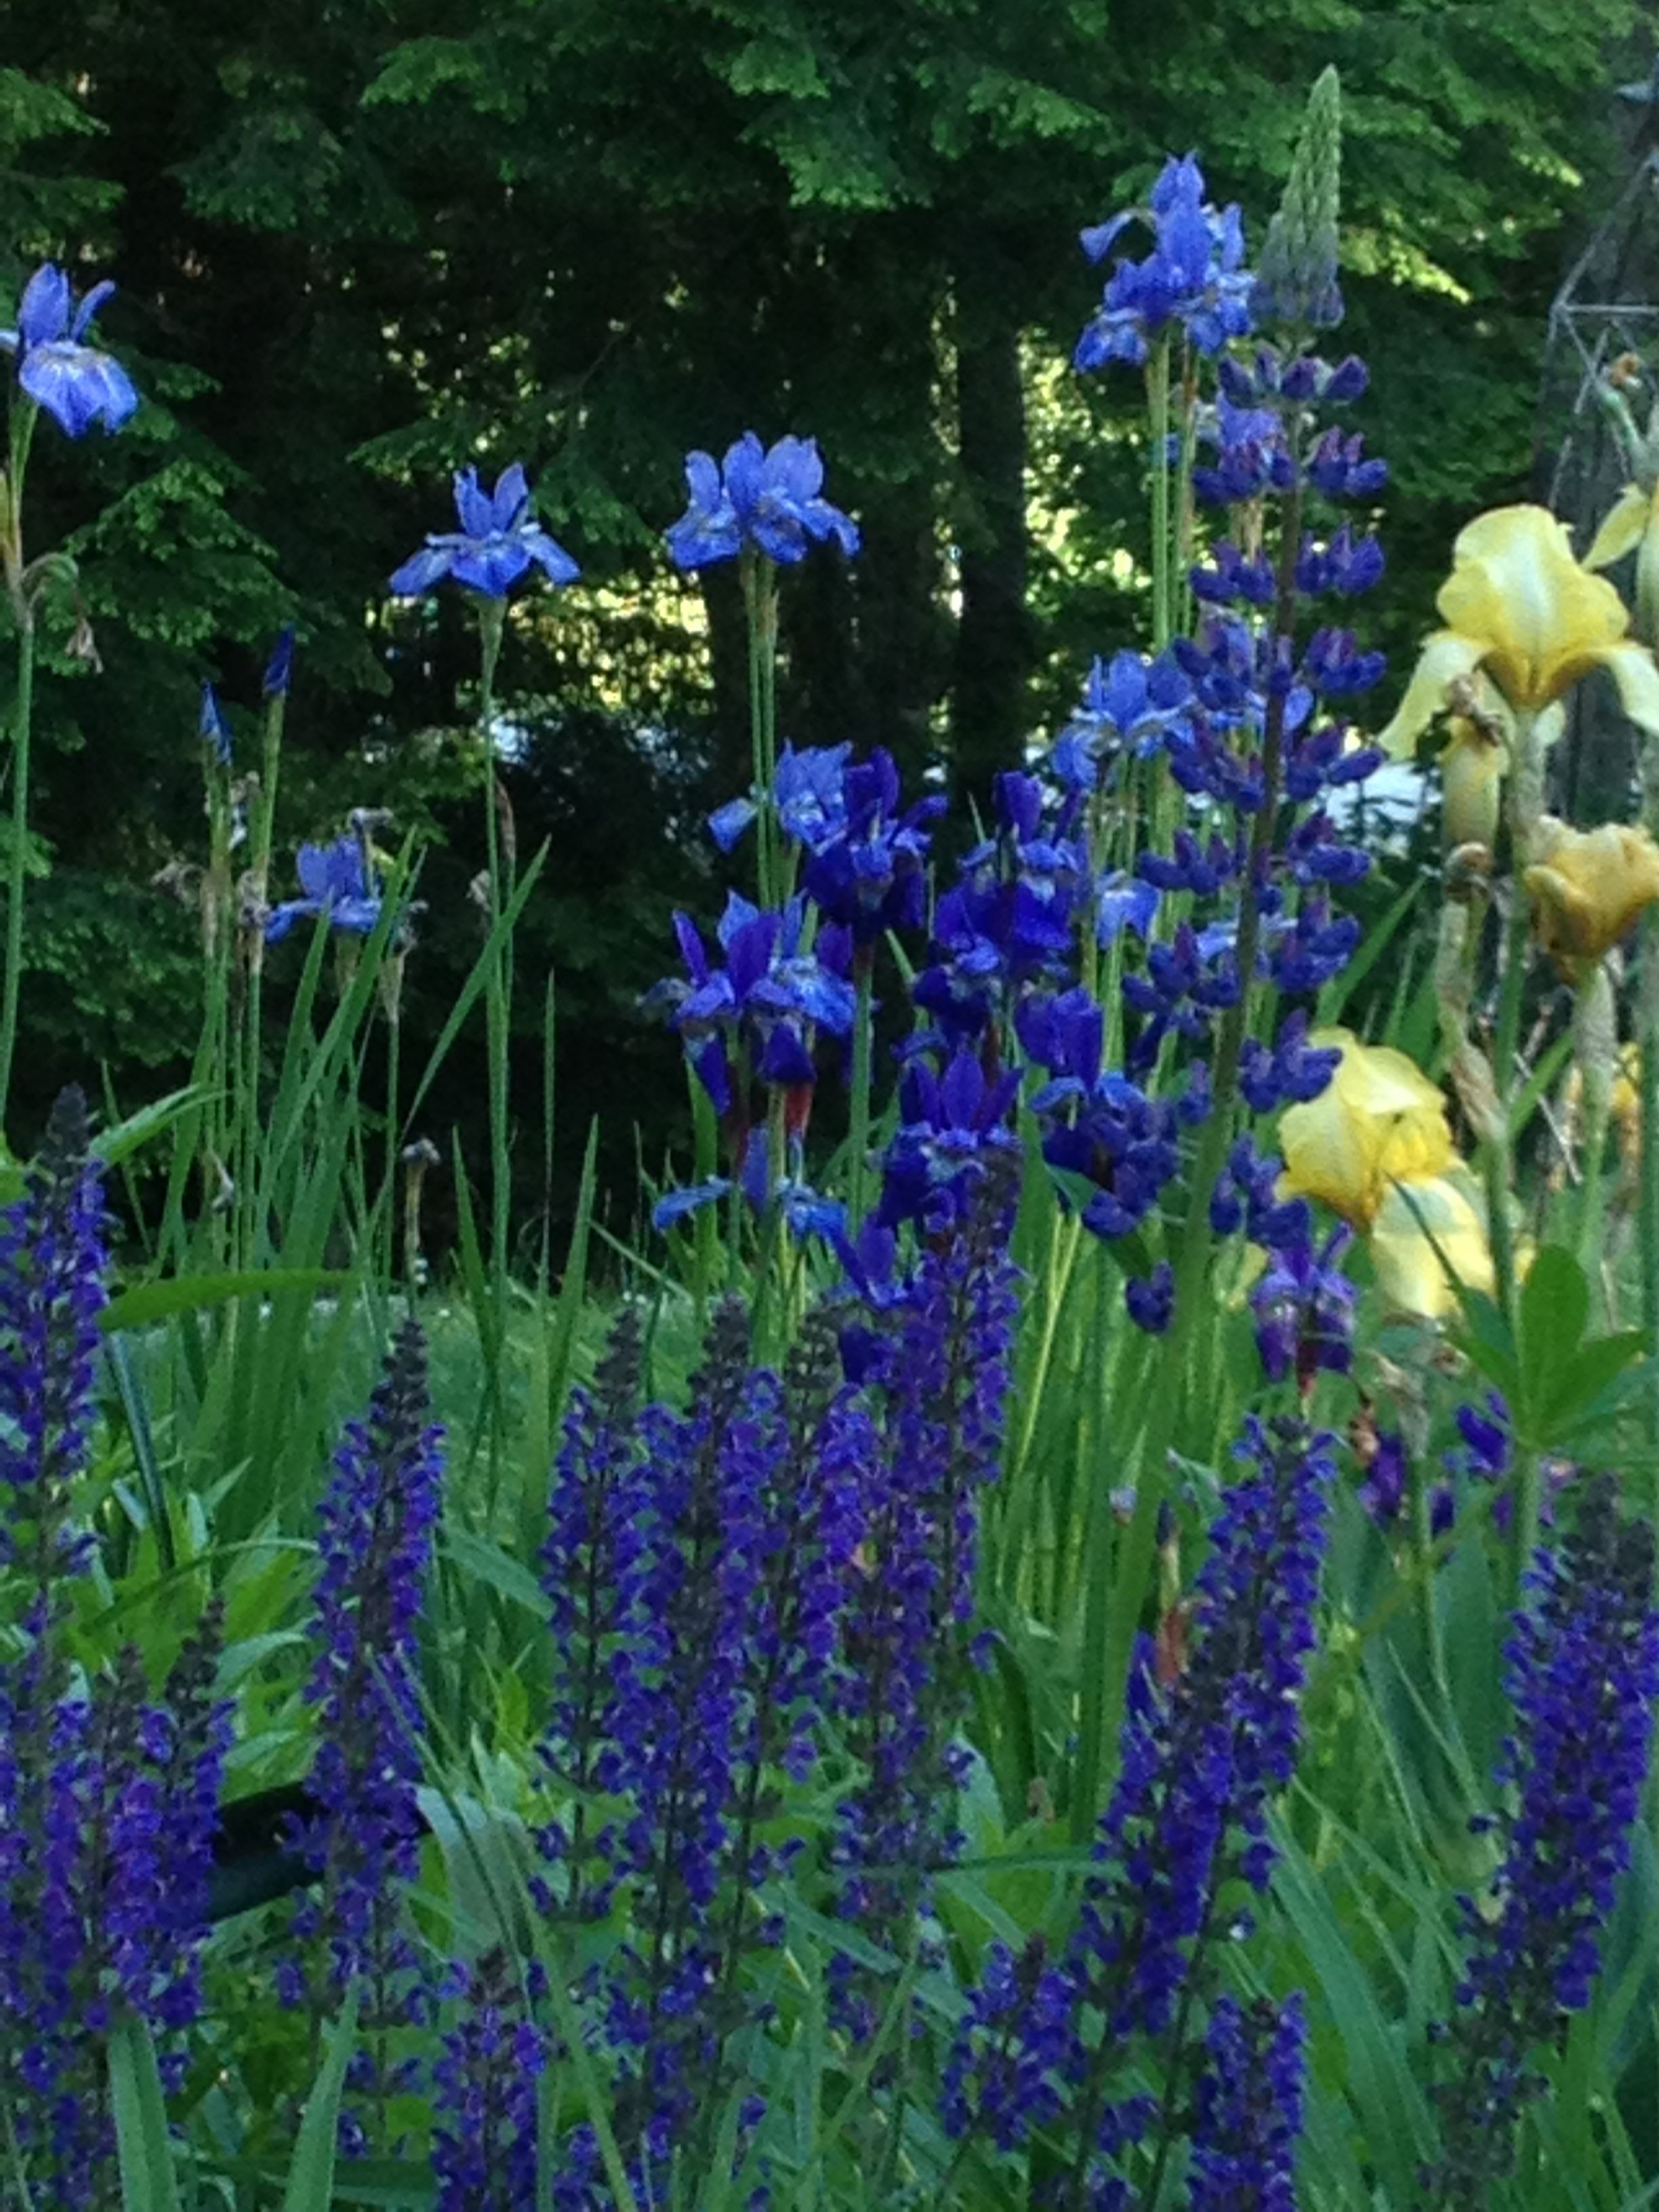 Iris flower bed flowers landscaping ideas pinterest iris iris flower bed izmirmasajfo